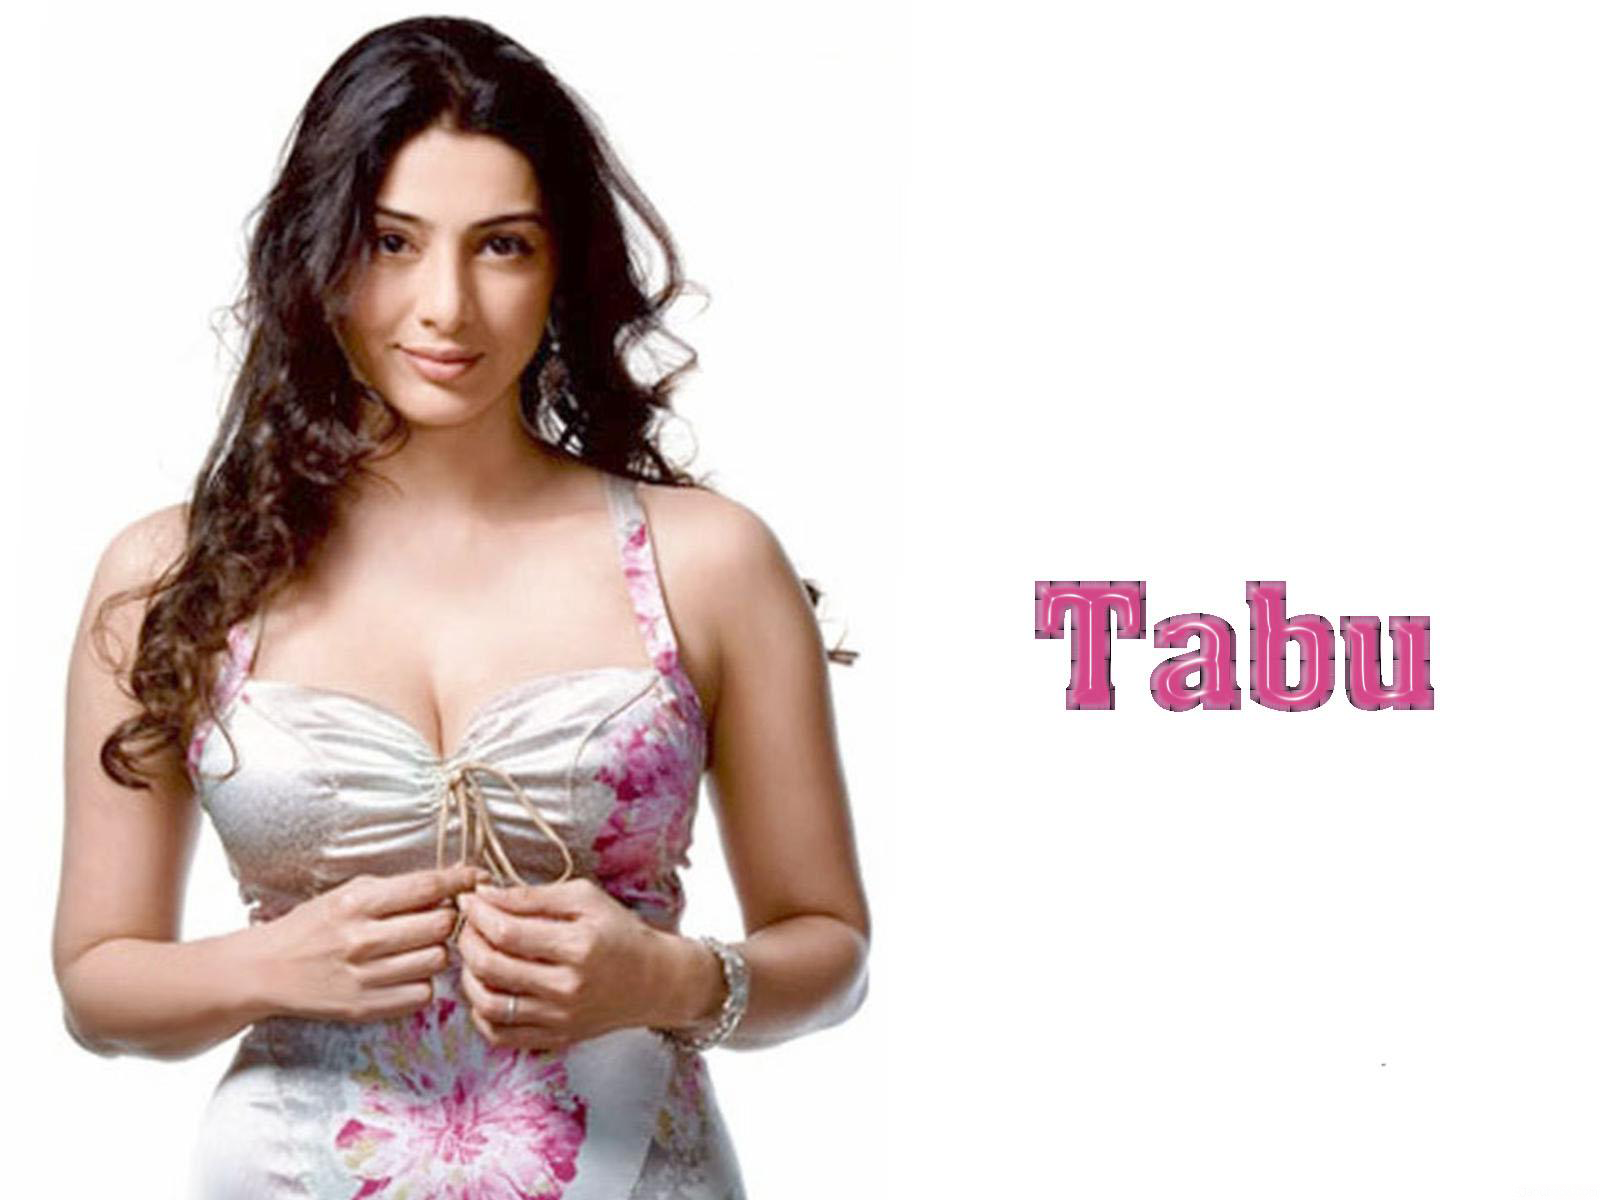 Tabu Hot & Sexy Images Gallery